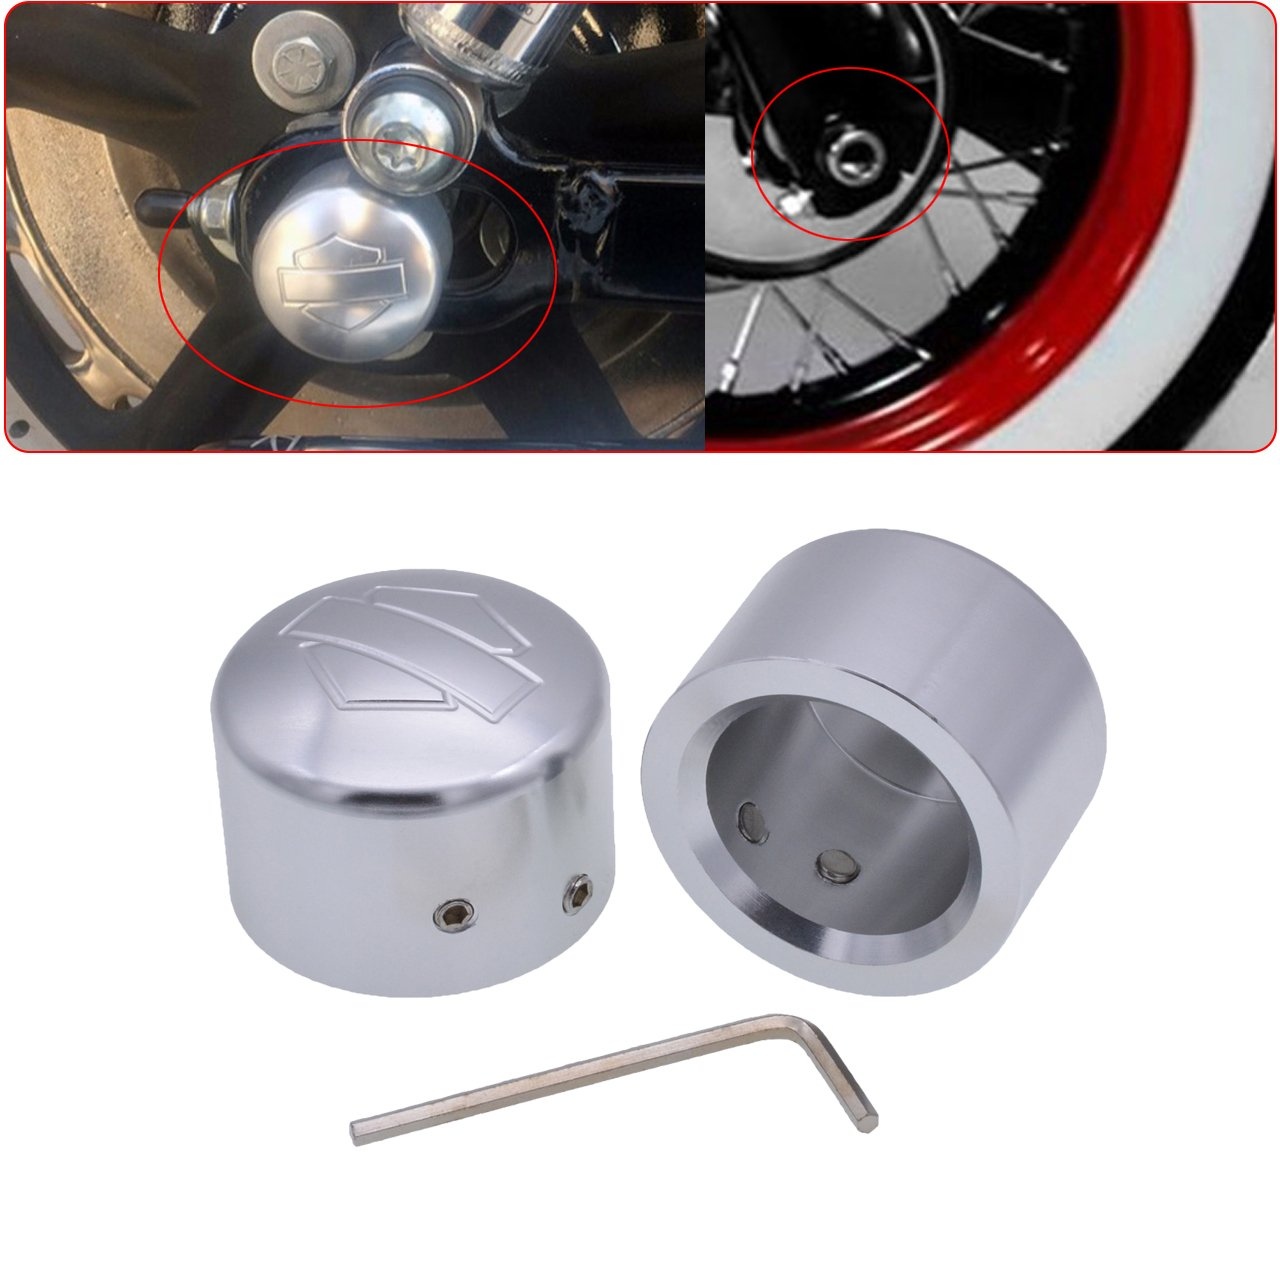 TUINCYN Chrome Motorcycle Front Axle Cover Cap Nut Motor Bike Aluminum Decoration Universal for Harley Harley XL883 XL1200 X48 Softail Dyna V-Rod Touring Trike (1 Pair)